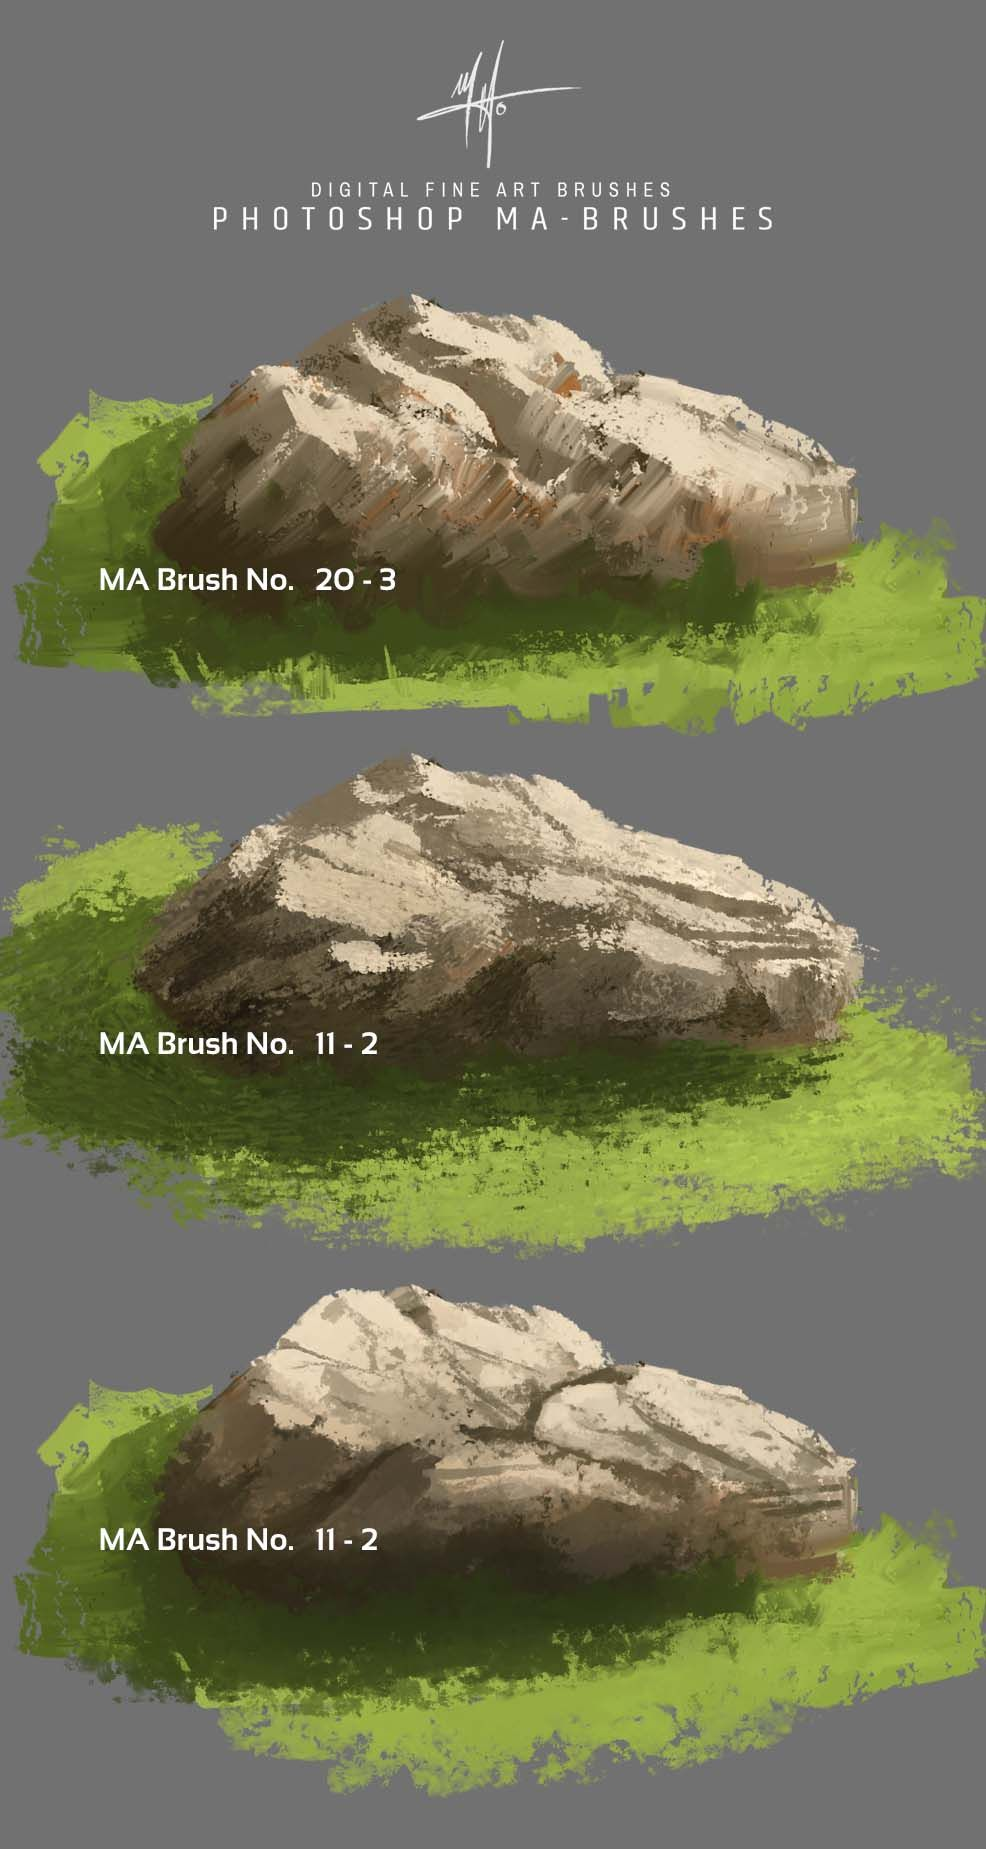 Concept Art Brushes - Foliage, Grass, Trees, Leaves Brush Pack